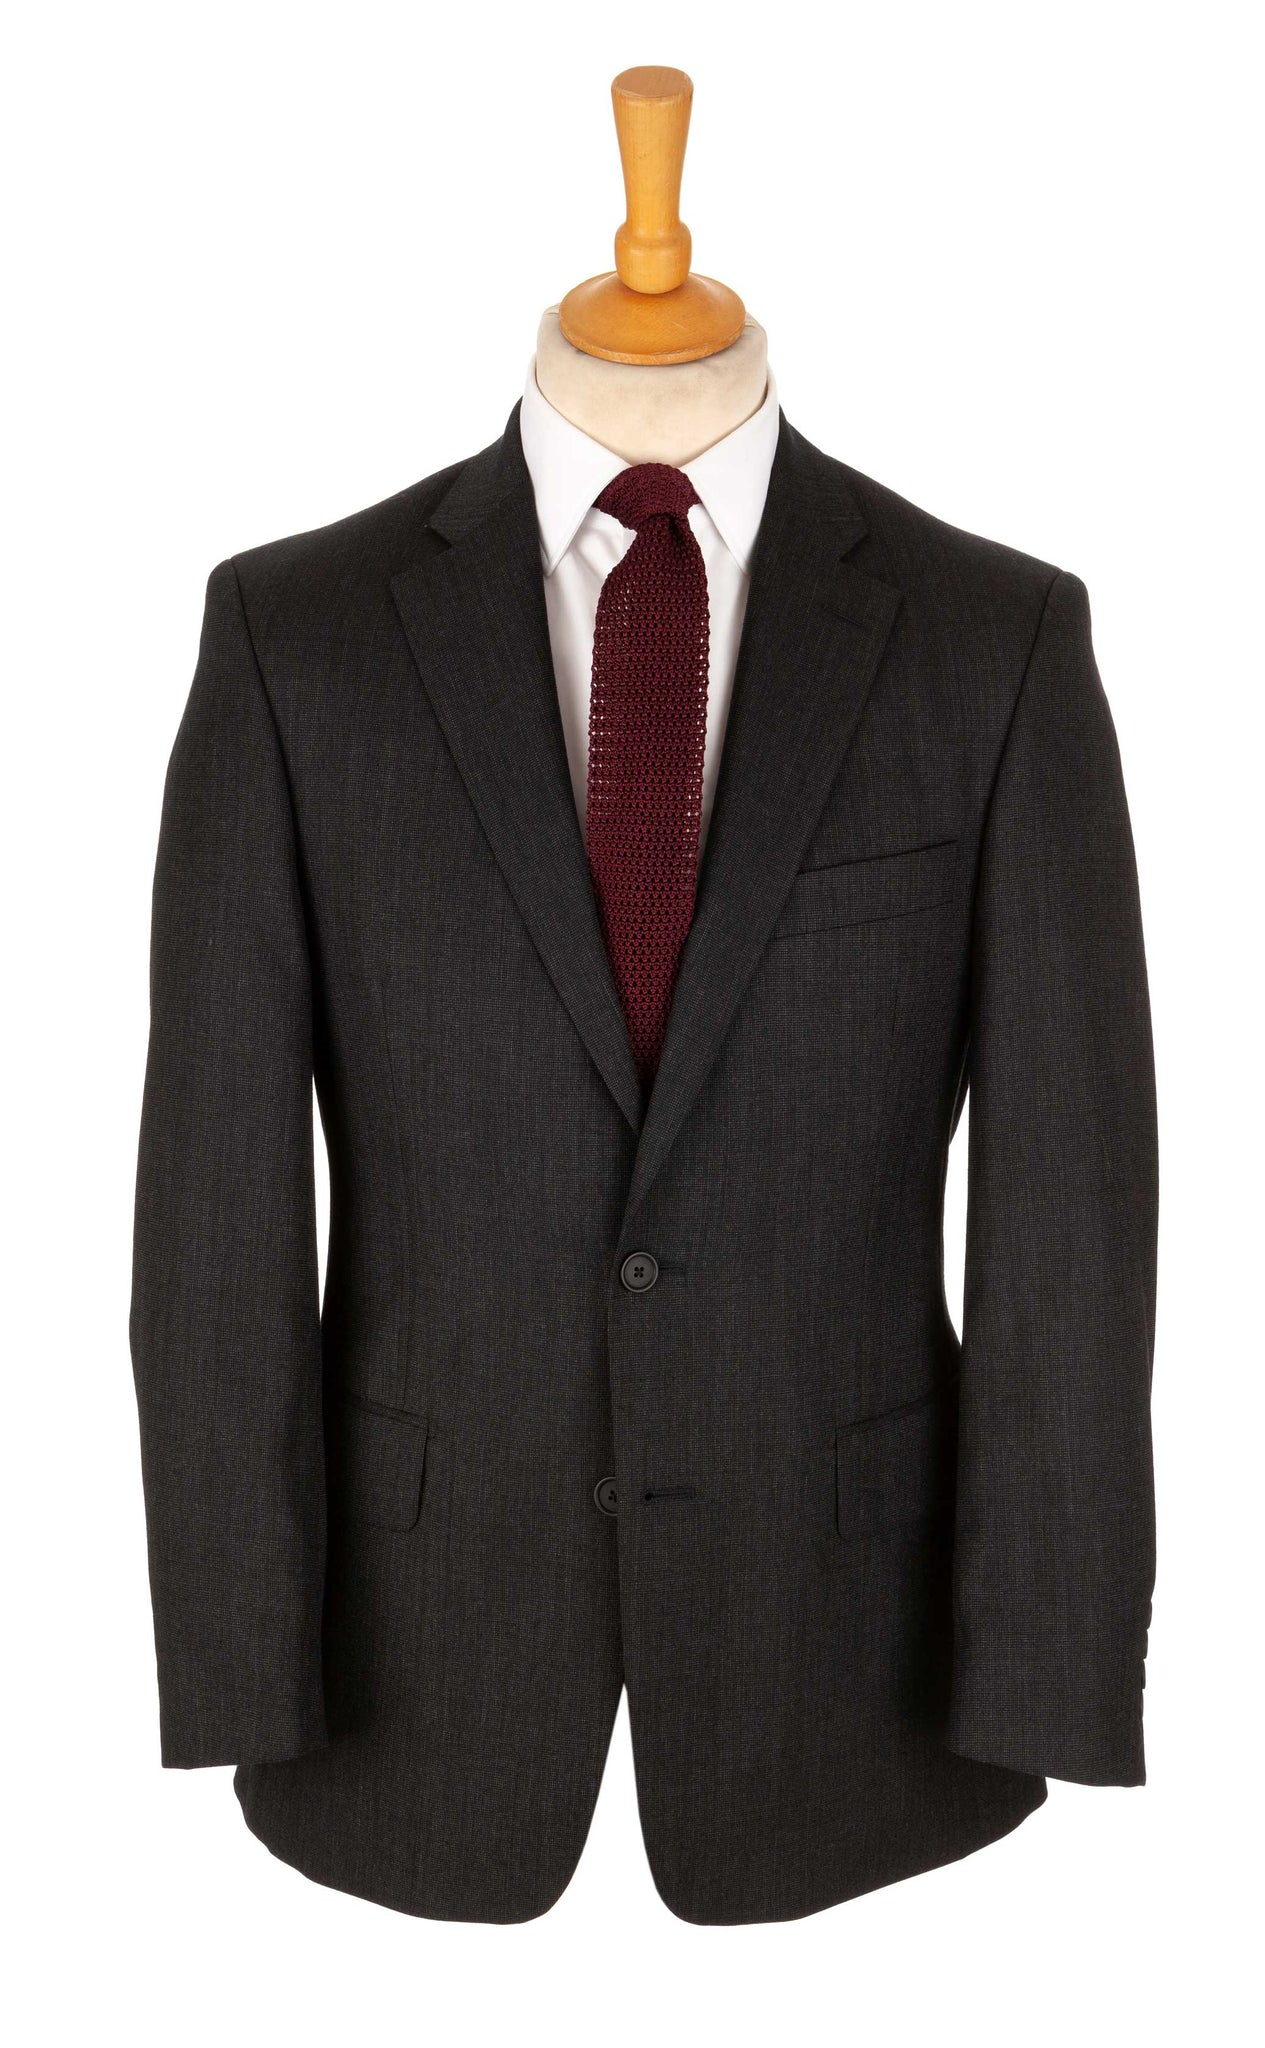 Regent - Ben Two-Button Suit - Charcoal Grey Wool - Regent Tailoring